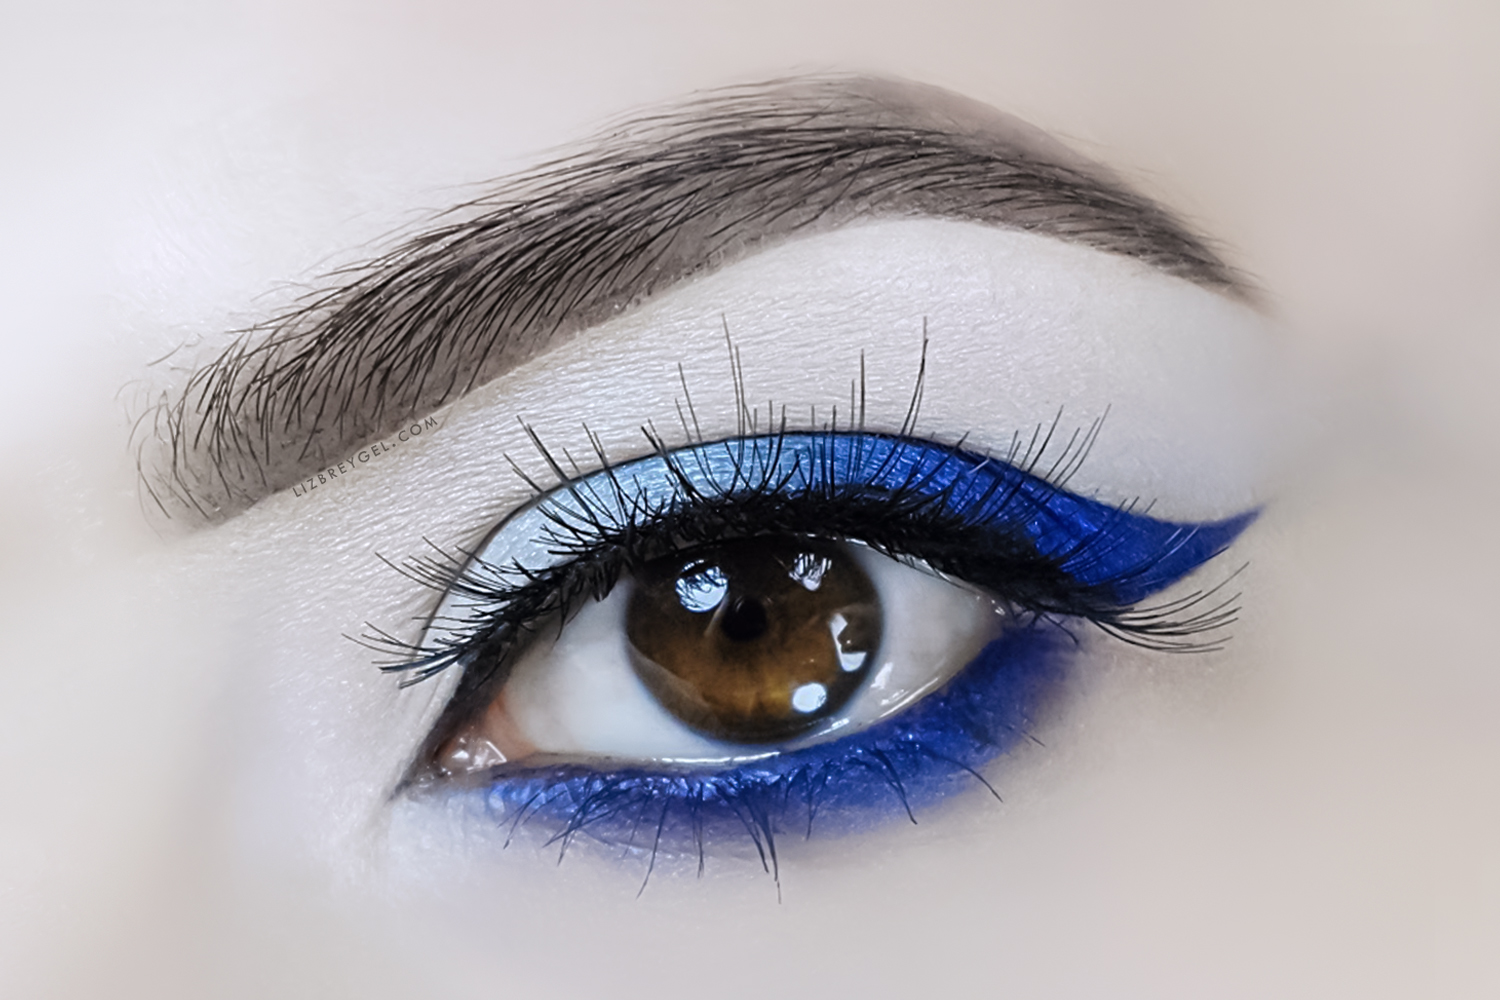 a close-up picture of an eye with dramatic makeup look